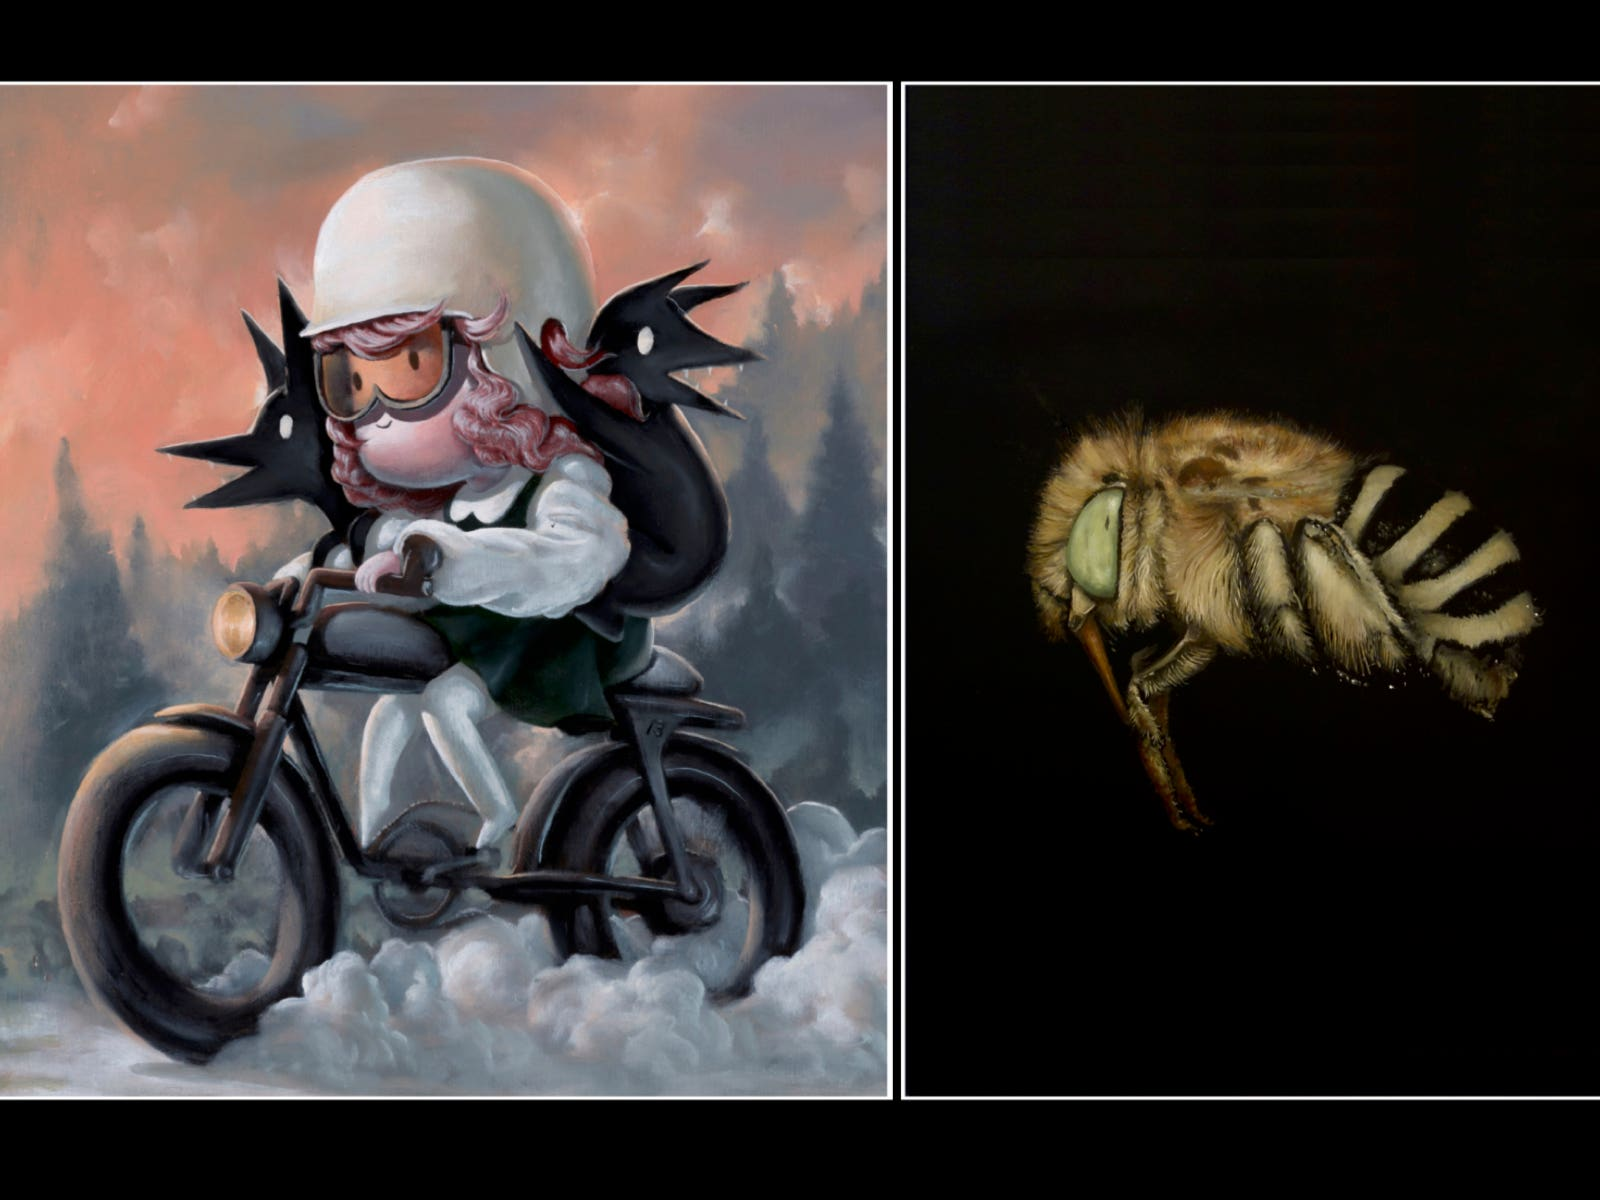 Two paintings, artist on left: Giorgiko; artist on right: Brad Woodfin